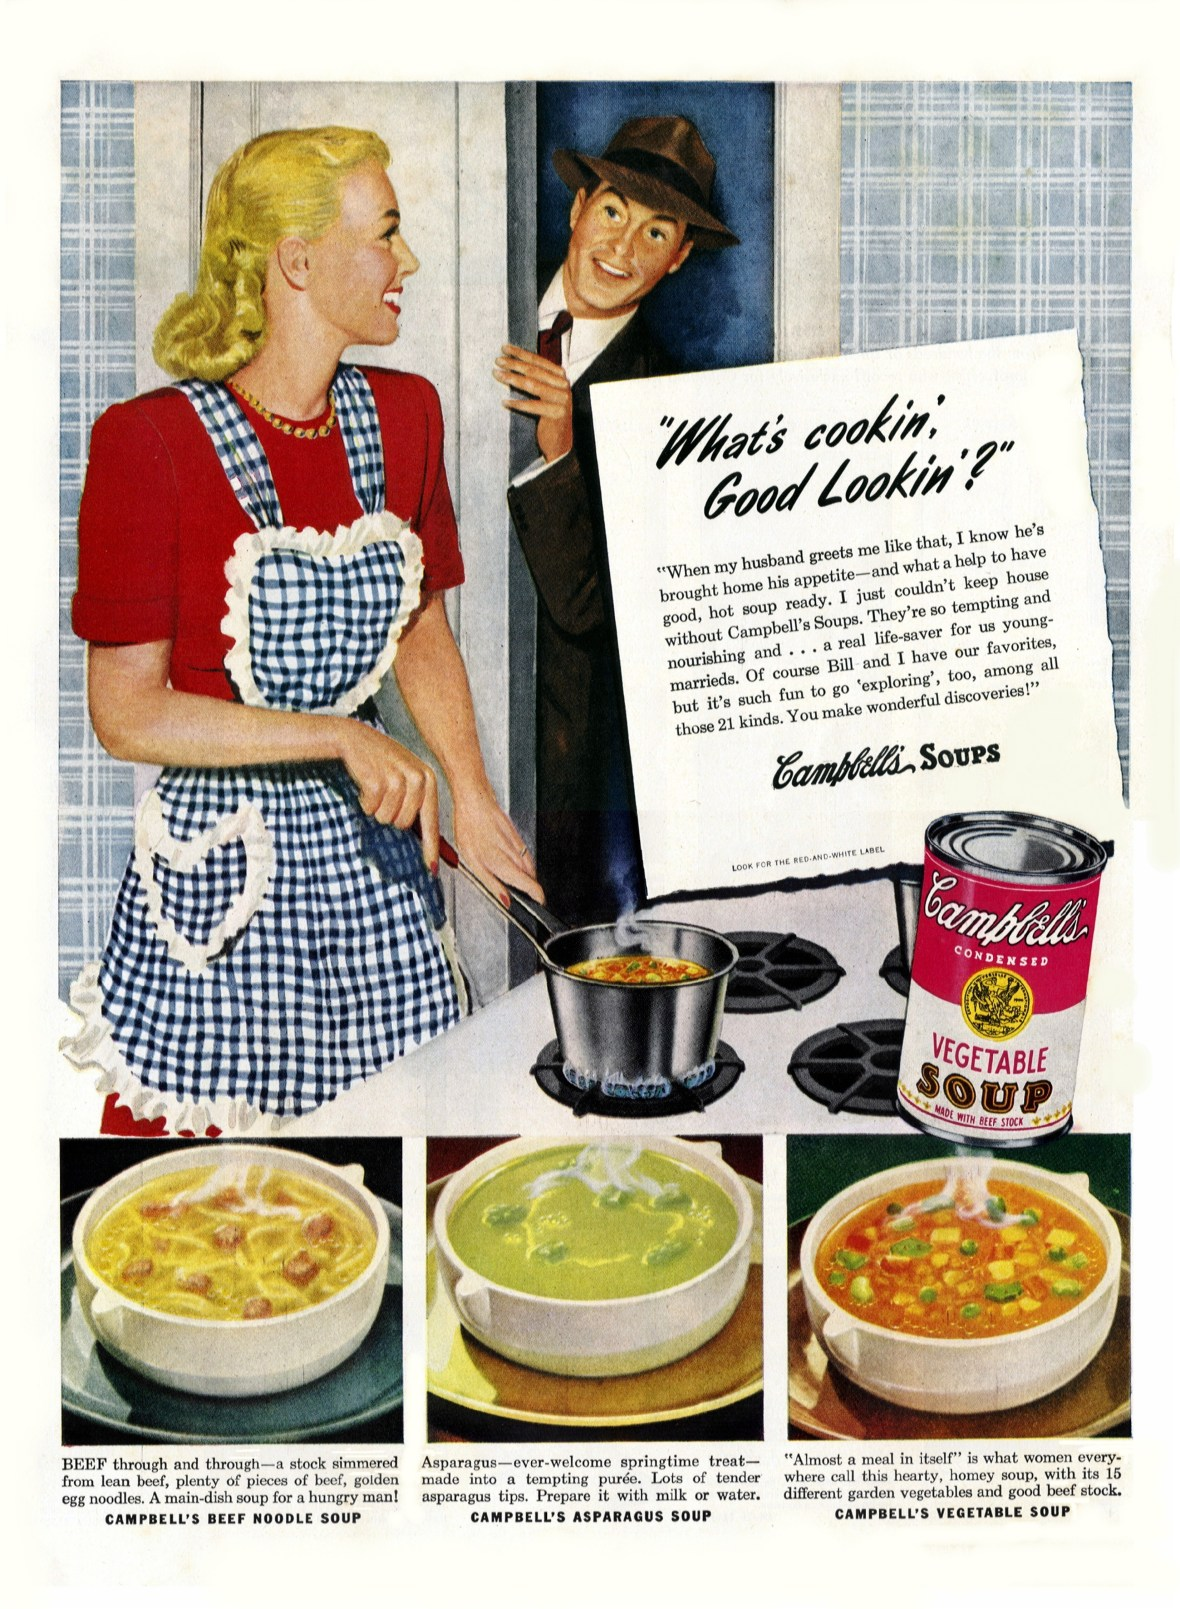 Campbell's Soup - published in Better Homes and Gardens - October 1947